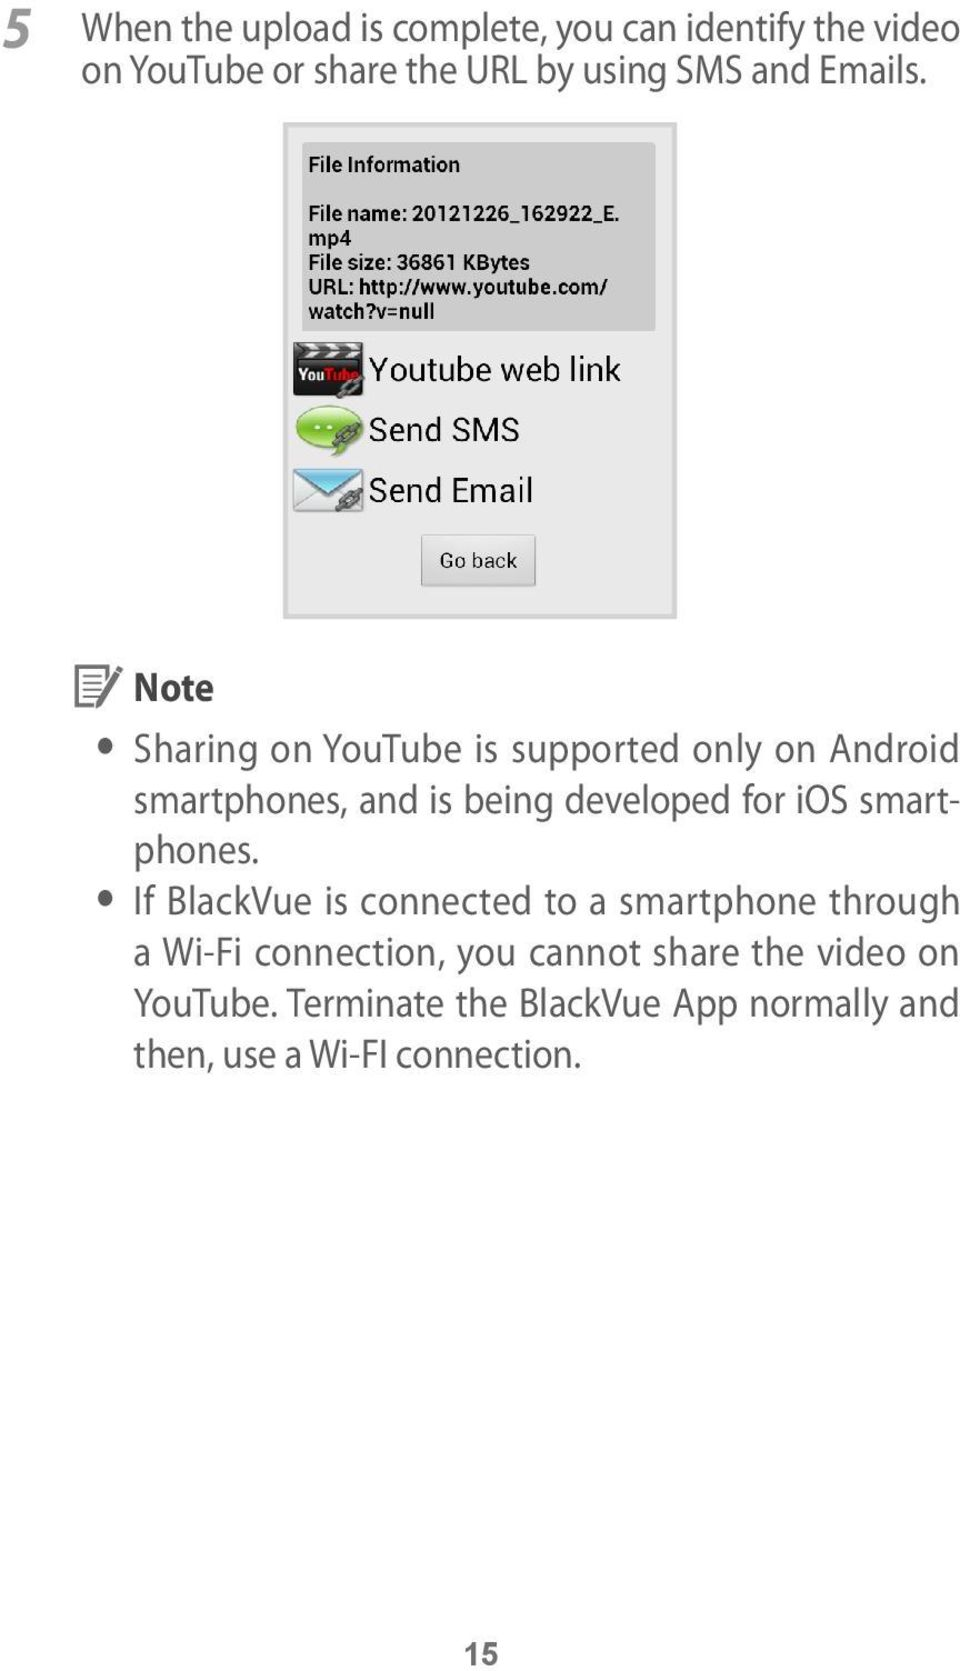 y Sharing on YouTube is supported only on Android smartphones, and is being developed for ios